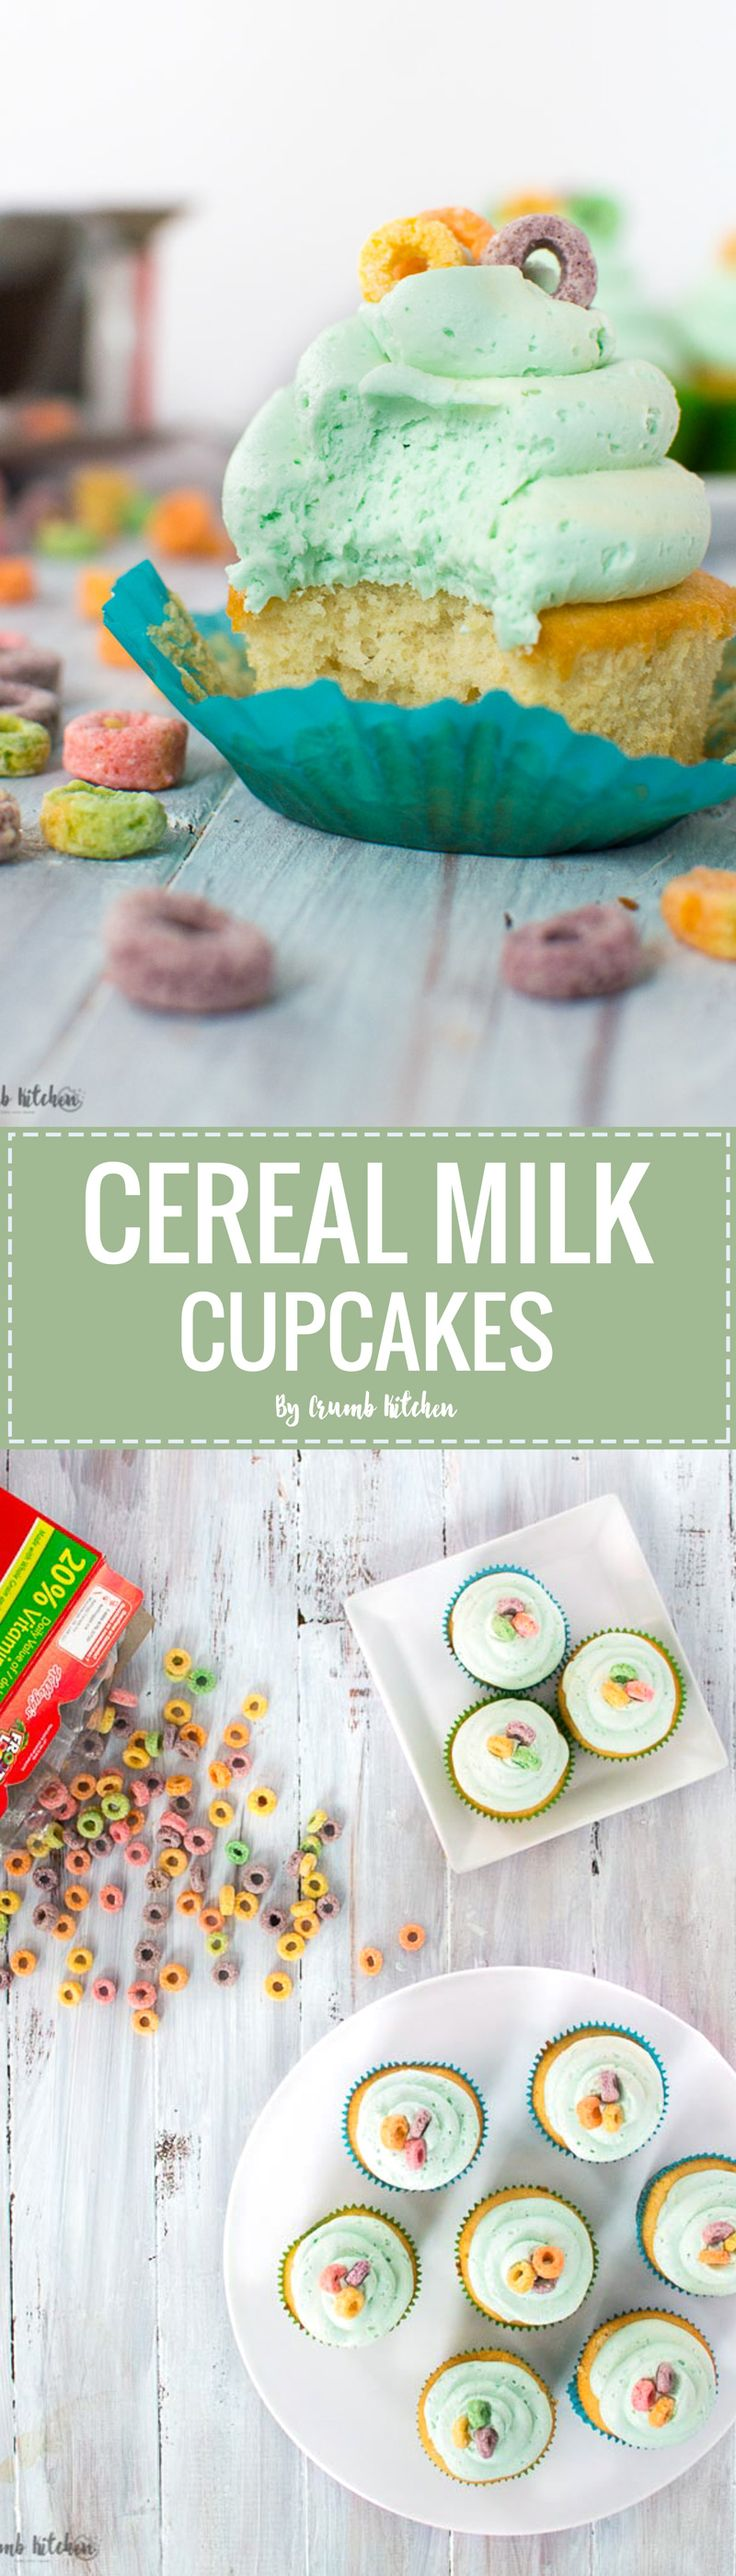 These Cereal Milk Cupcakes combine the sweet and salty taste of cereal milk with fluffy vanilla cake and the perfect buttercream frosting.   Crumb Kitchen